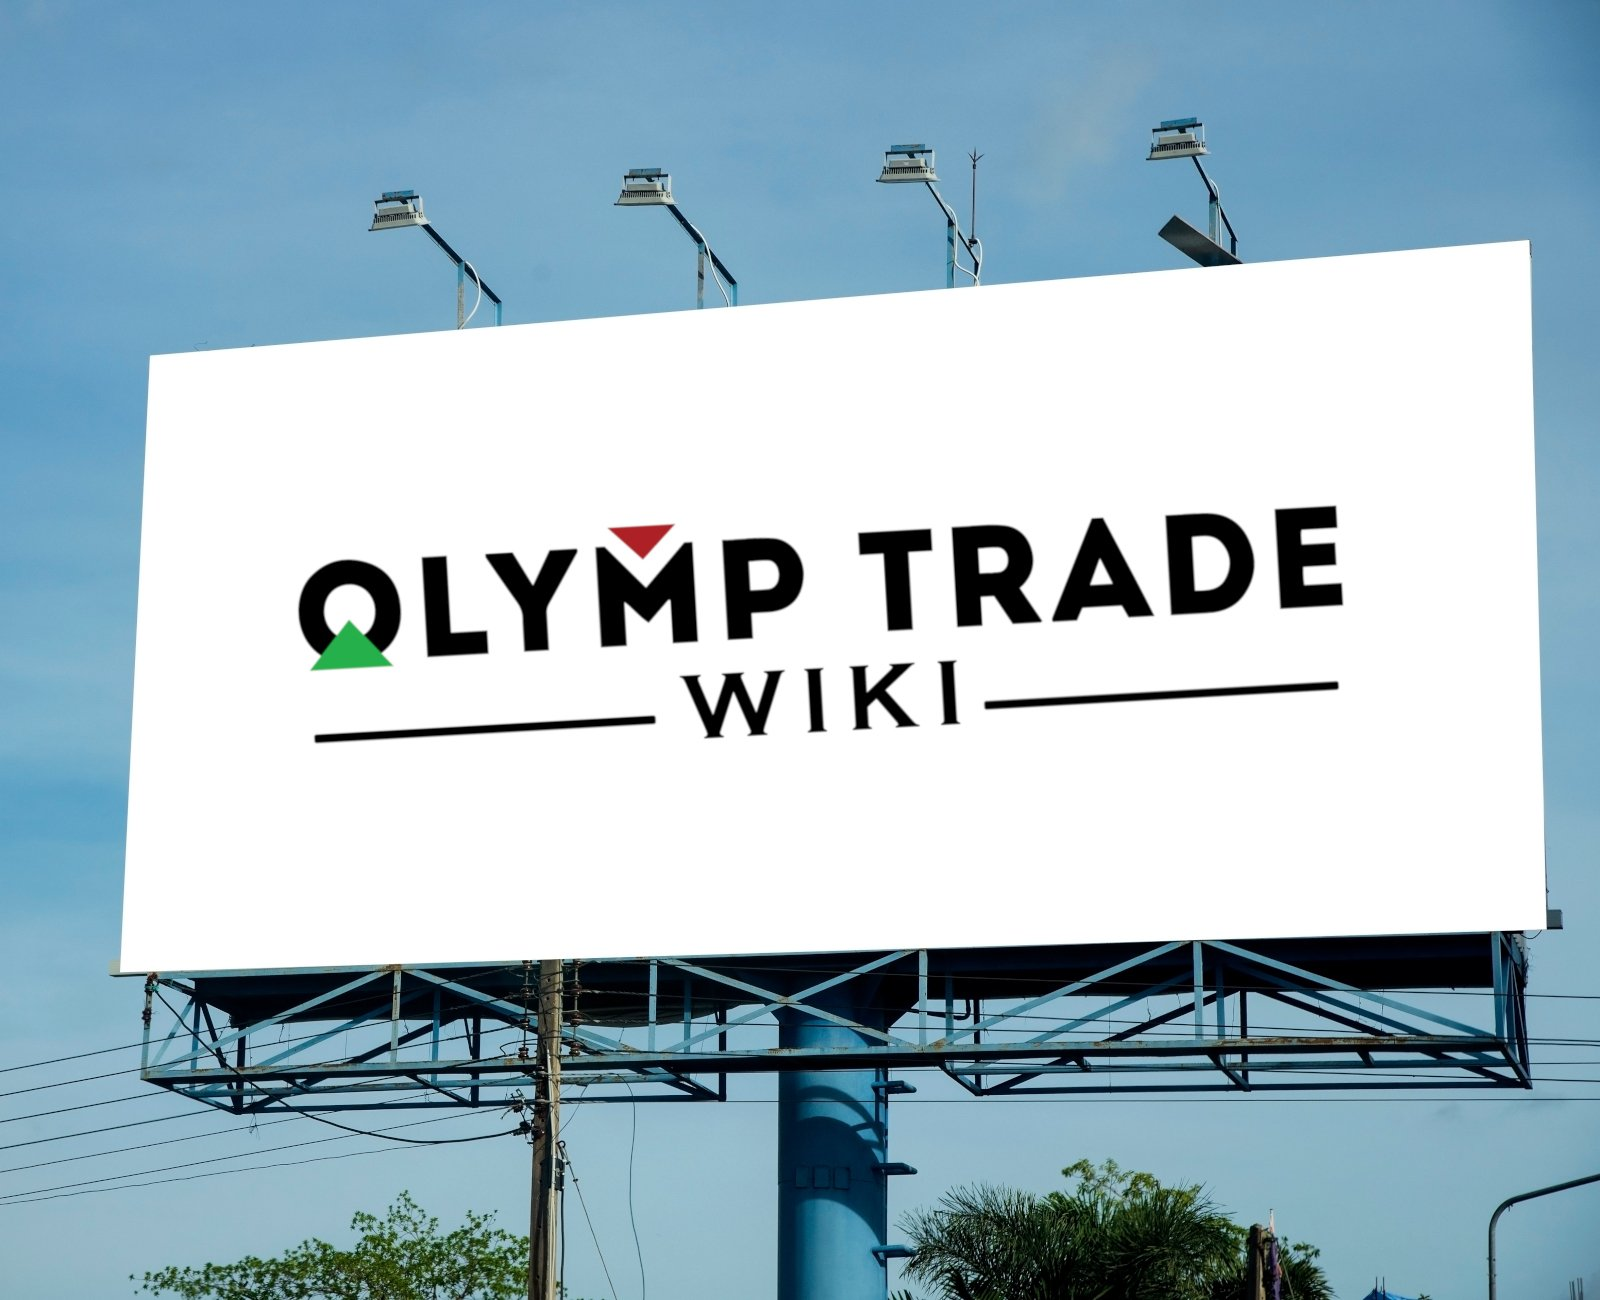 Olymp Trade billboard